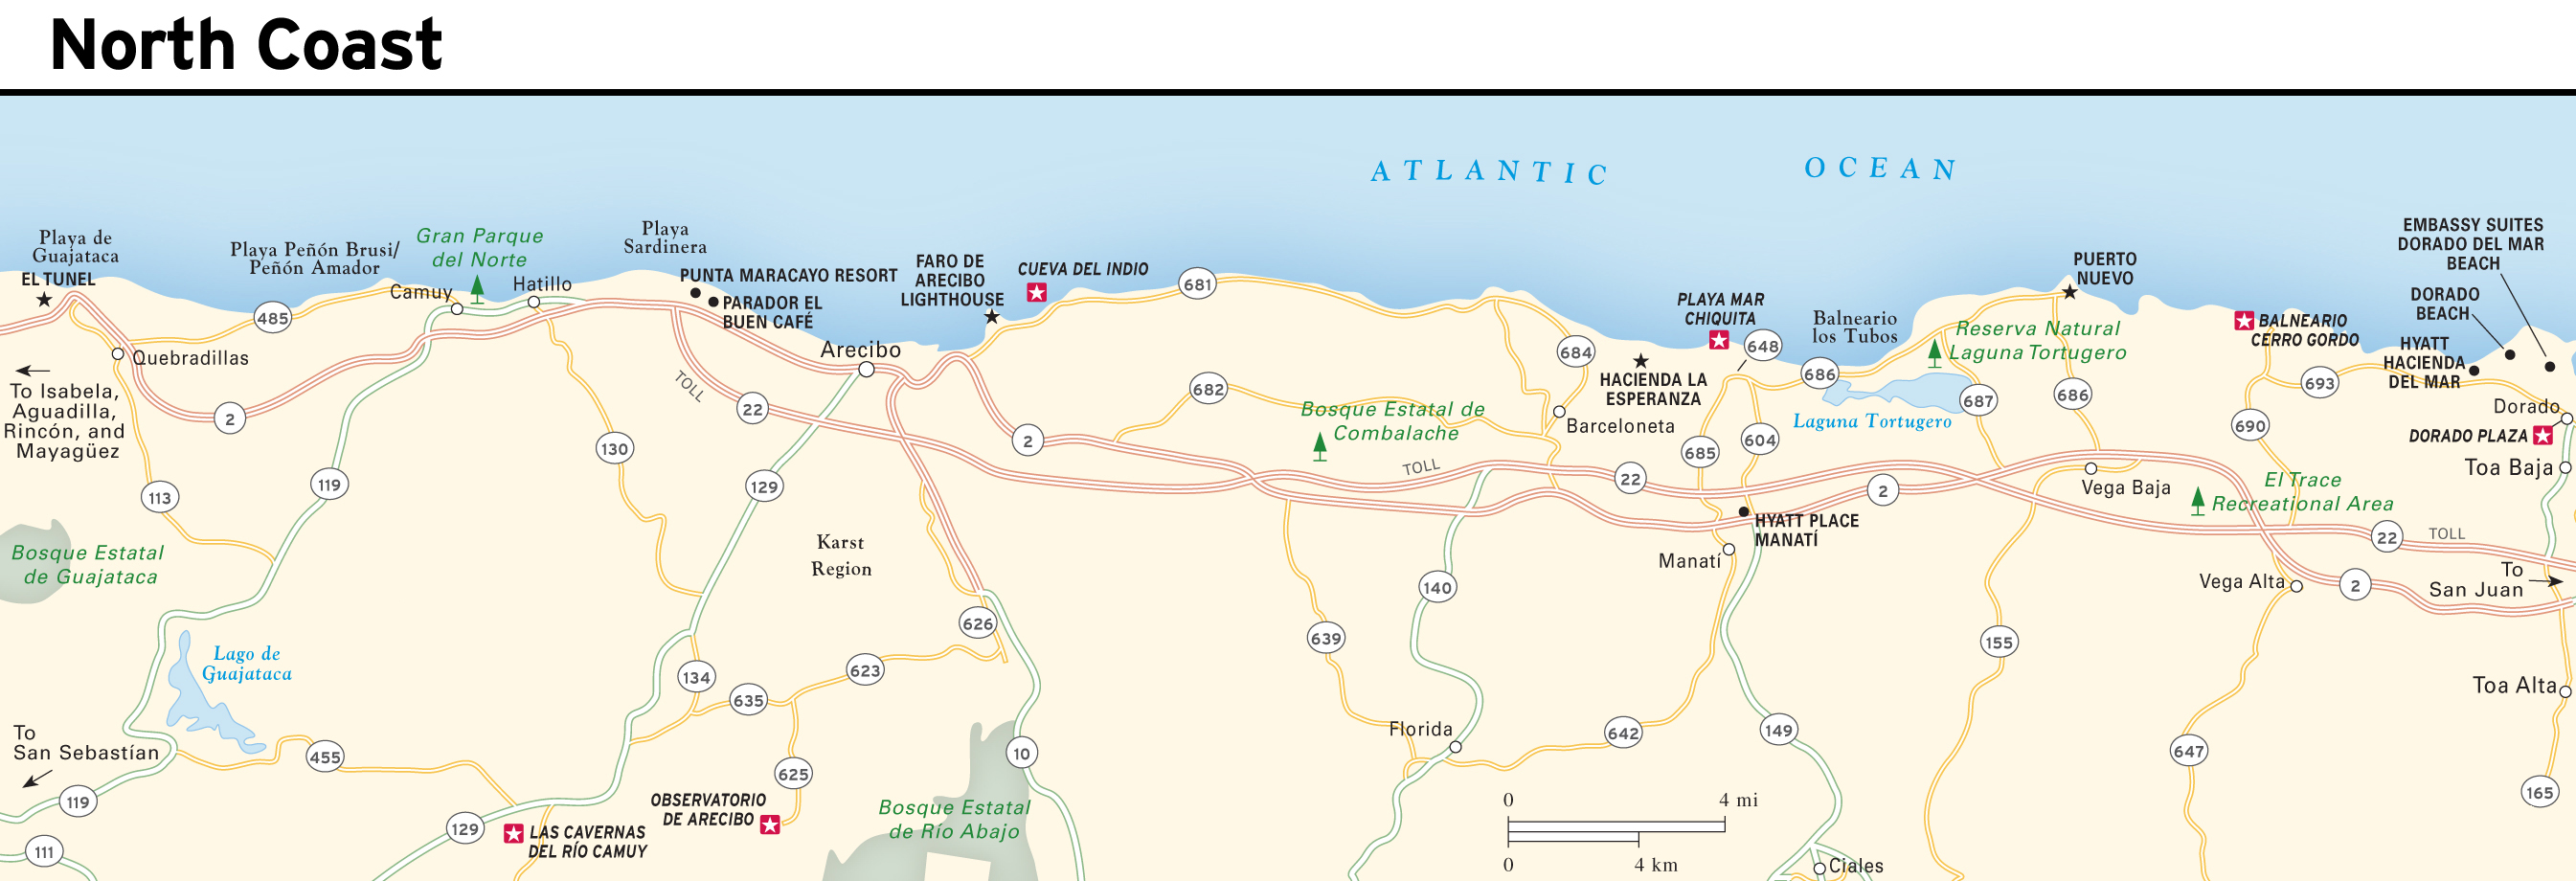 Large detailed North Coast map of Puerto Rico | Puerto Rico ...